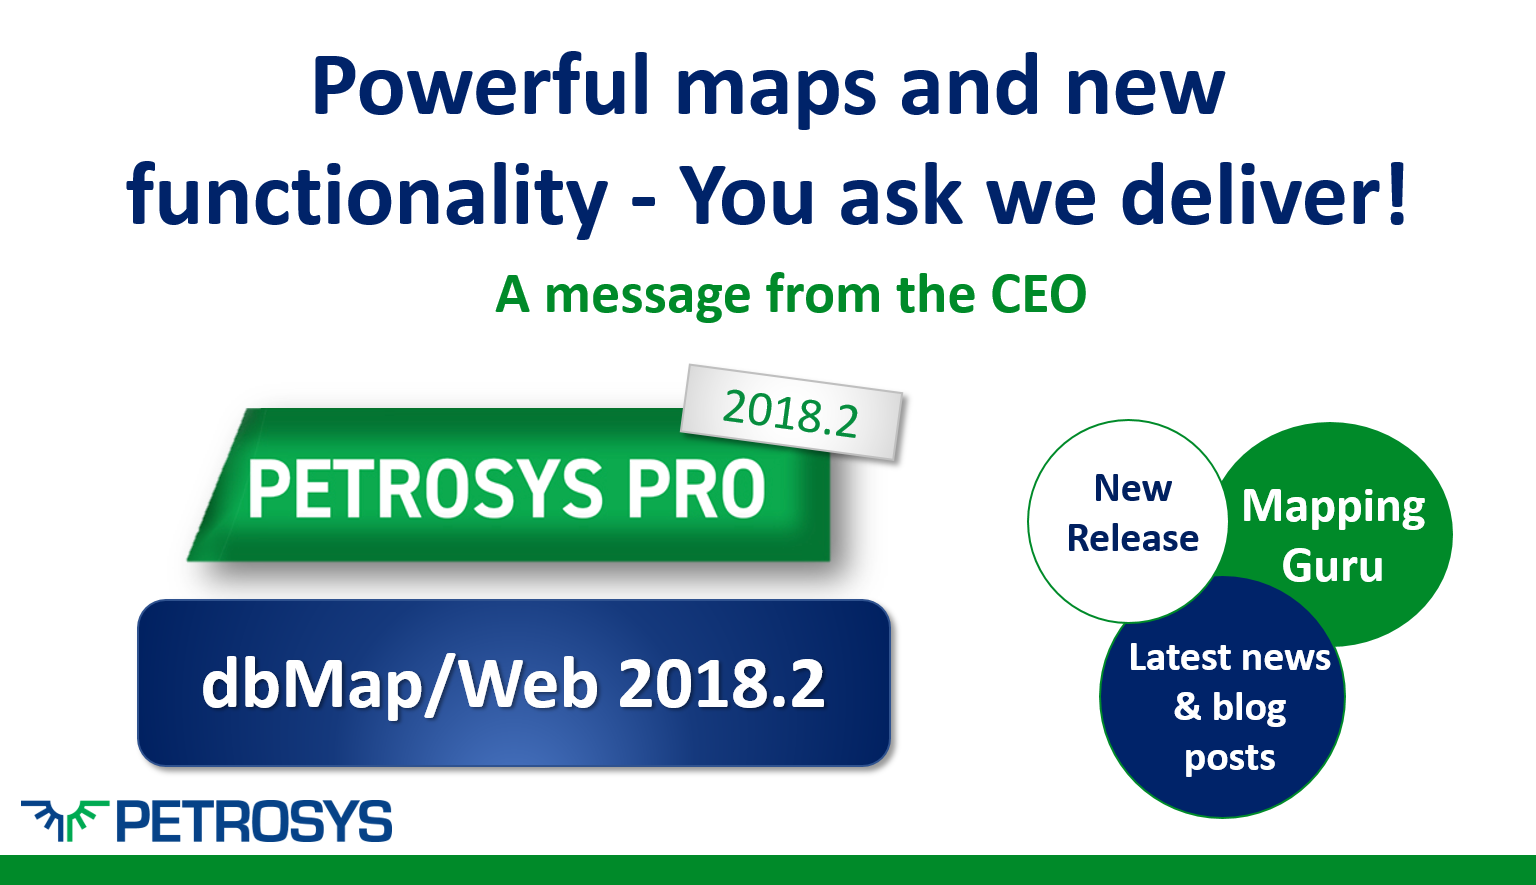 Powerful maps and new functionality - You ask we deliver!